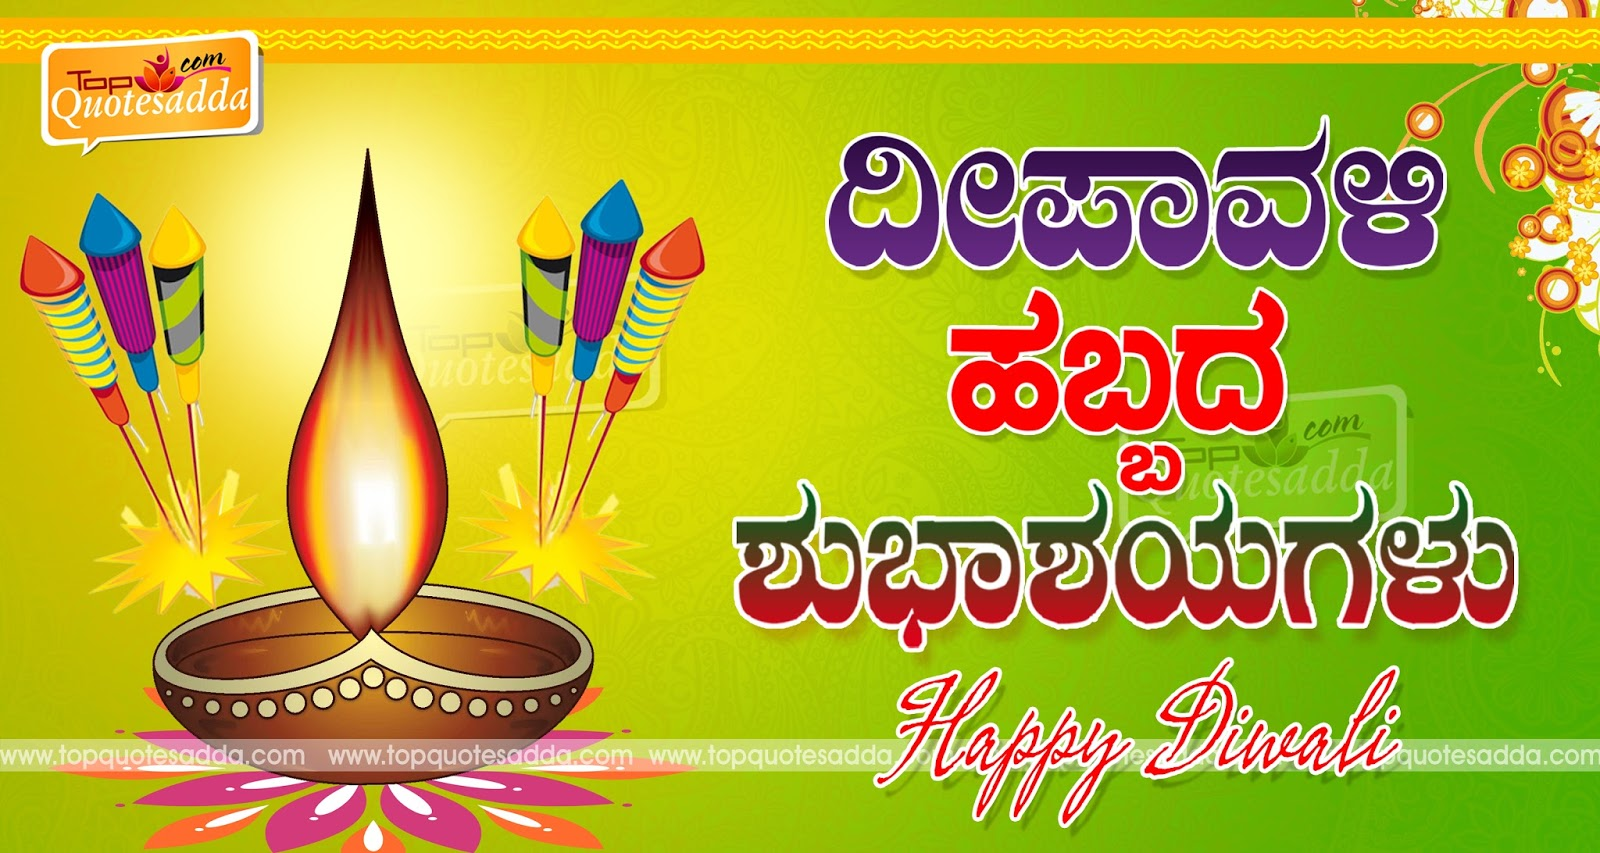 Happy diwali 28deepavali29 kannada quotes and greetings hd happy diwali 28deepavali29 kannada quotes and greetings hd wallpapers free online alltopquotesg 1600853 diwali wishes pinterest kannada kristyandbryce Choice Image